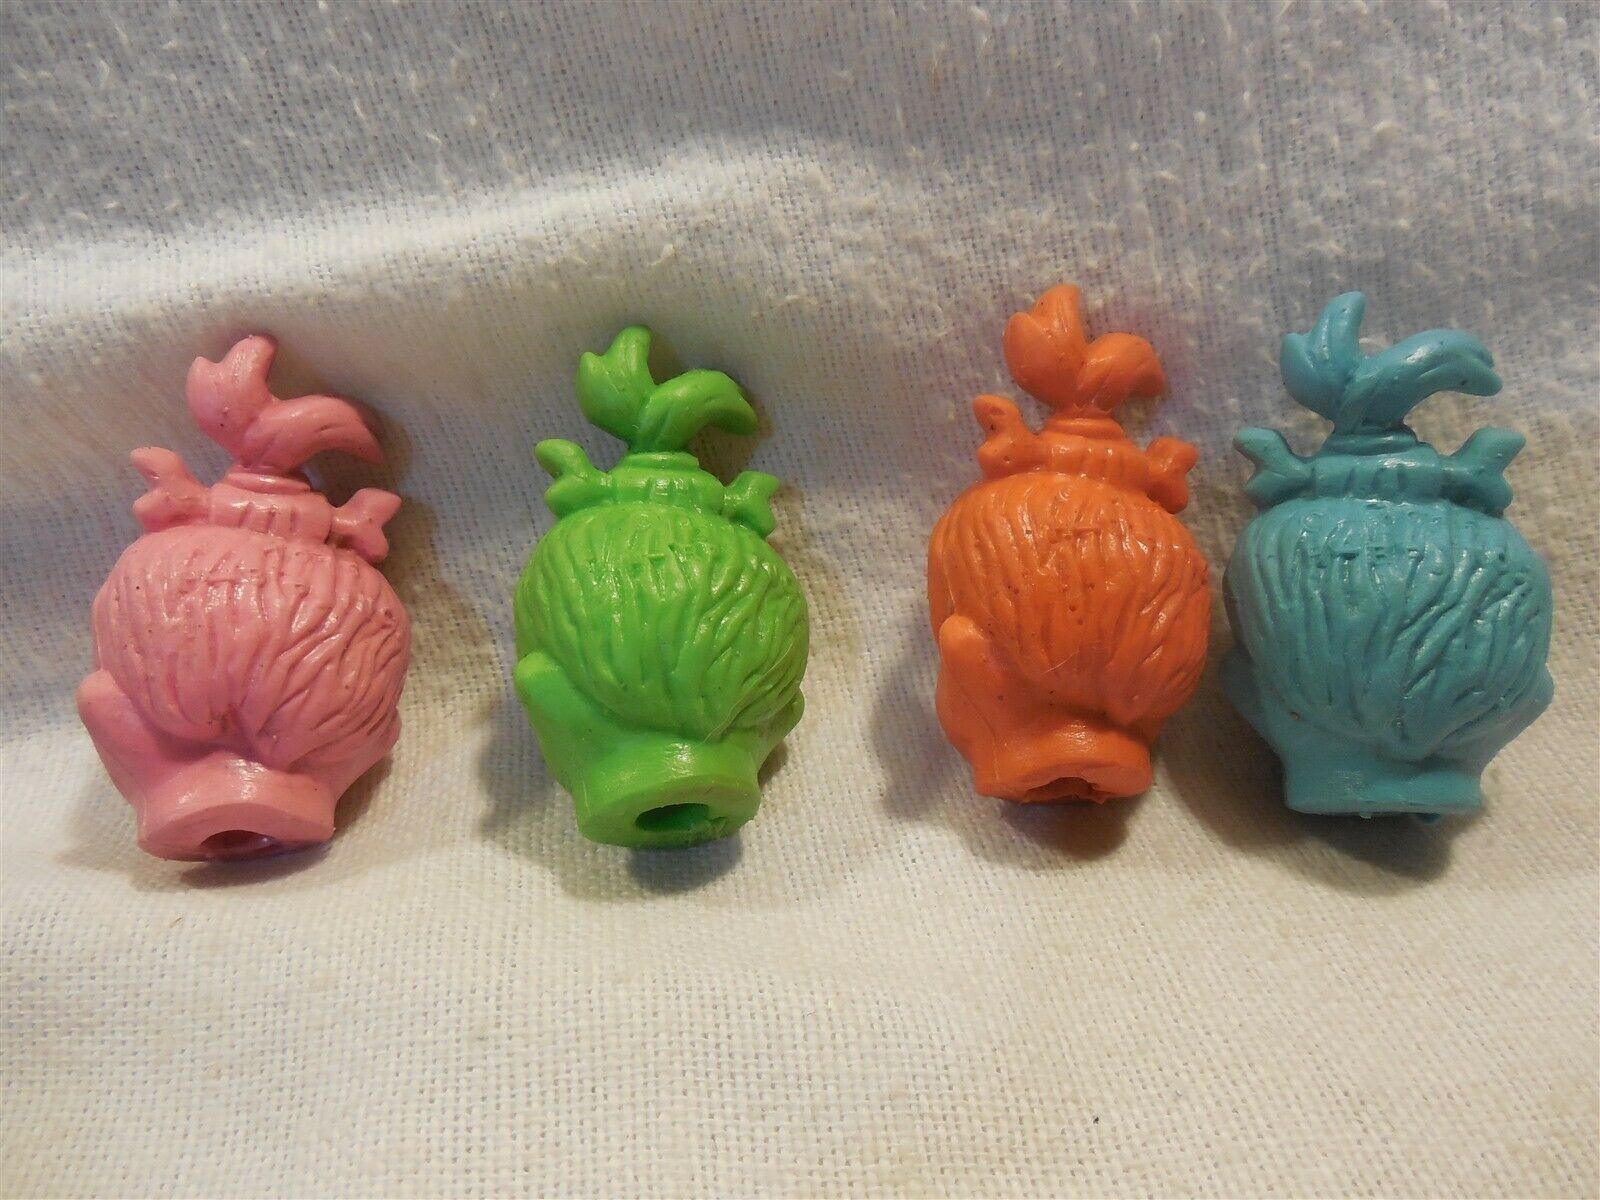 Flintstones 1976 HBP Inc Set of 4 Pebbles Flintstone Pencil Top Rubber Erasers